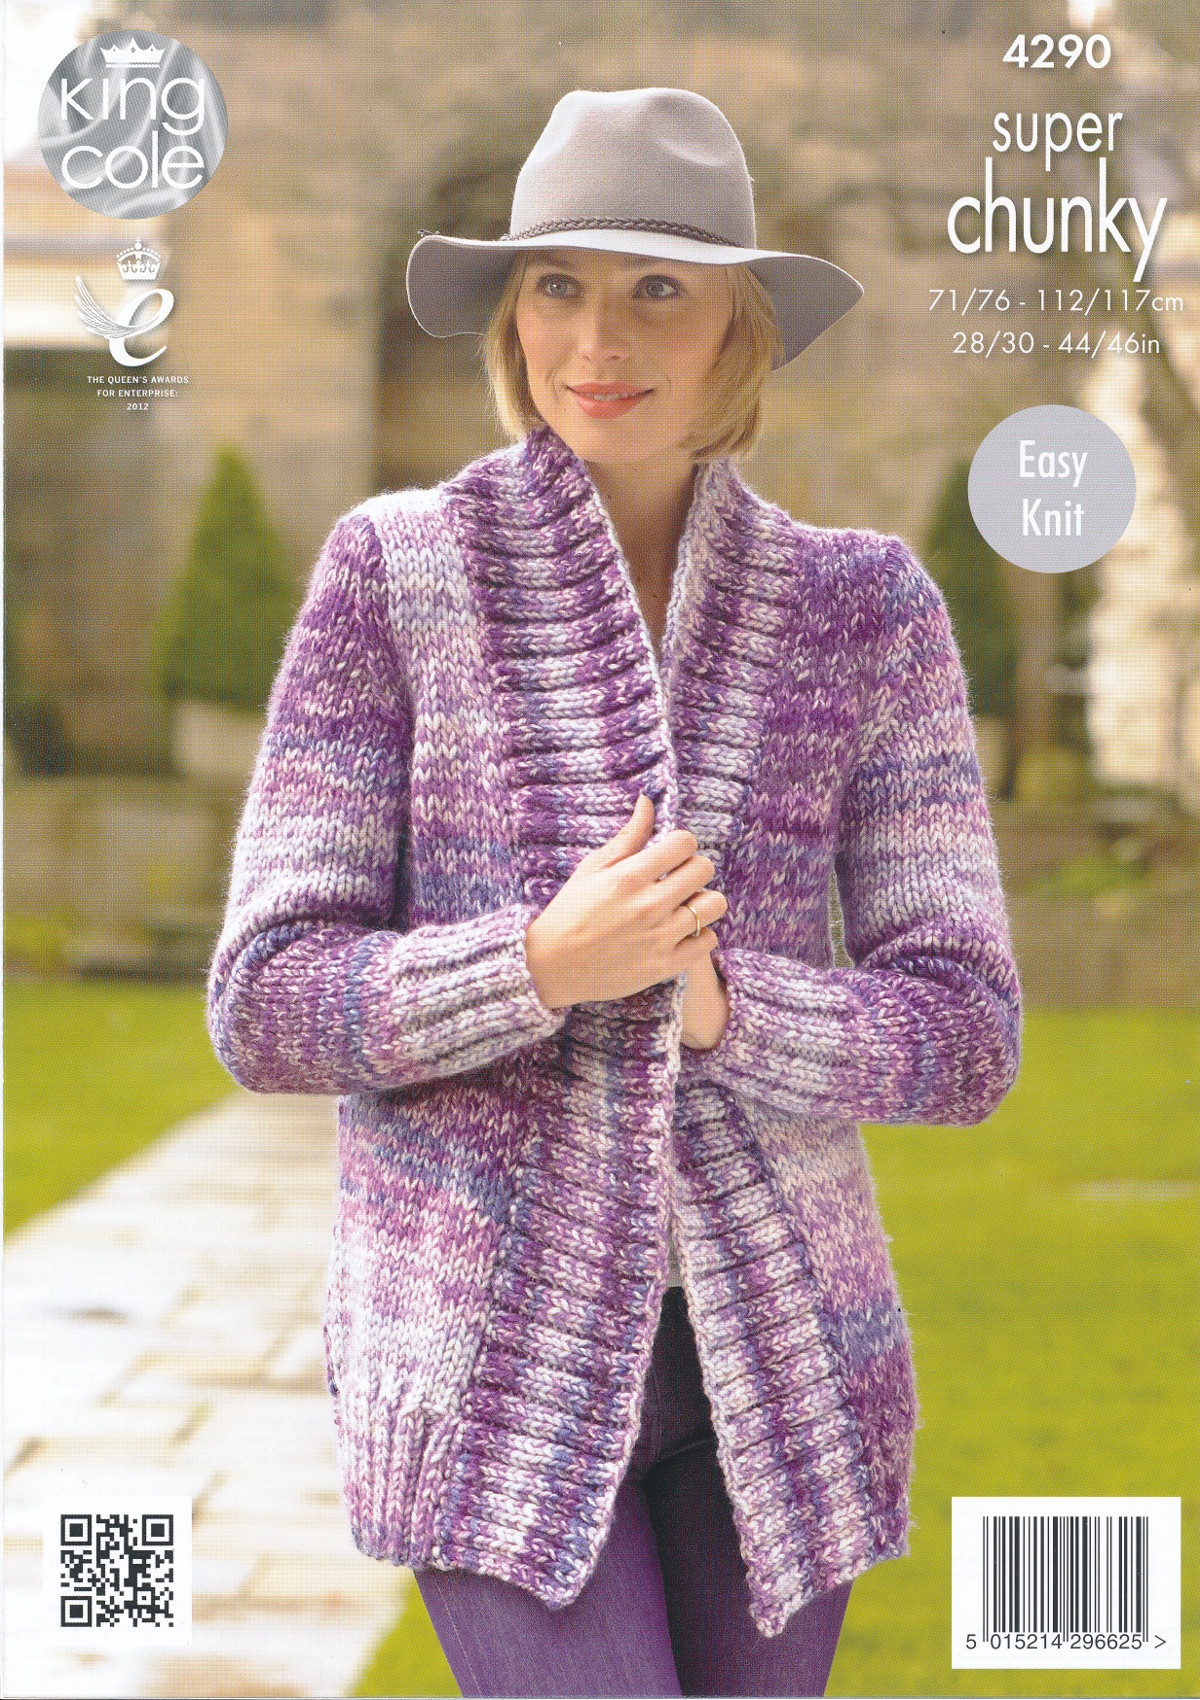 King Cole Ladies Easy Knit Super Chunky Knitting Pattern Ribbed ...